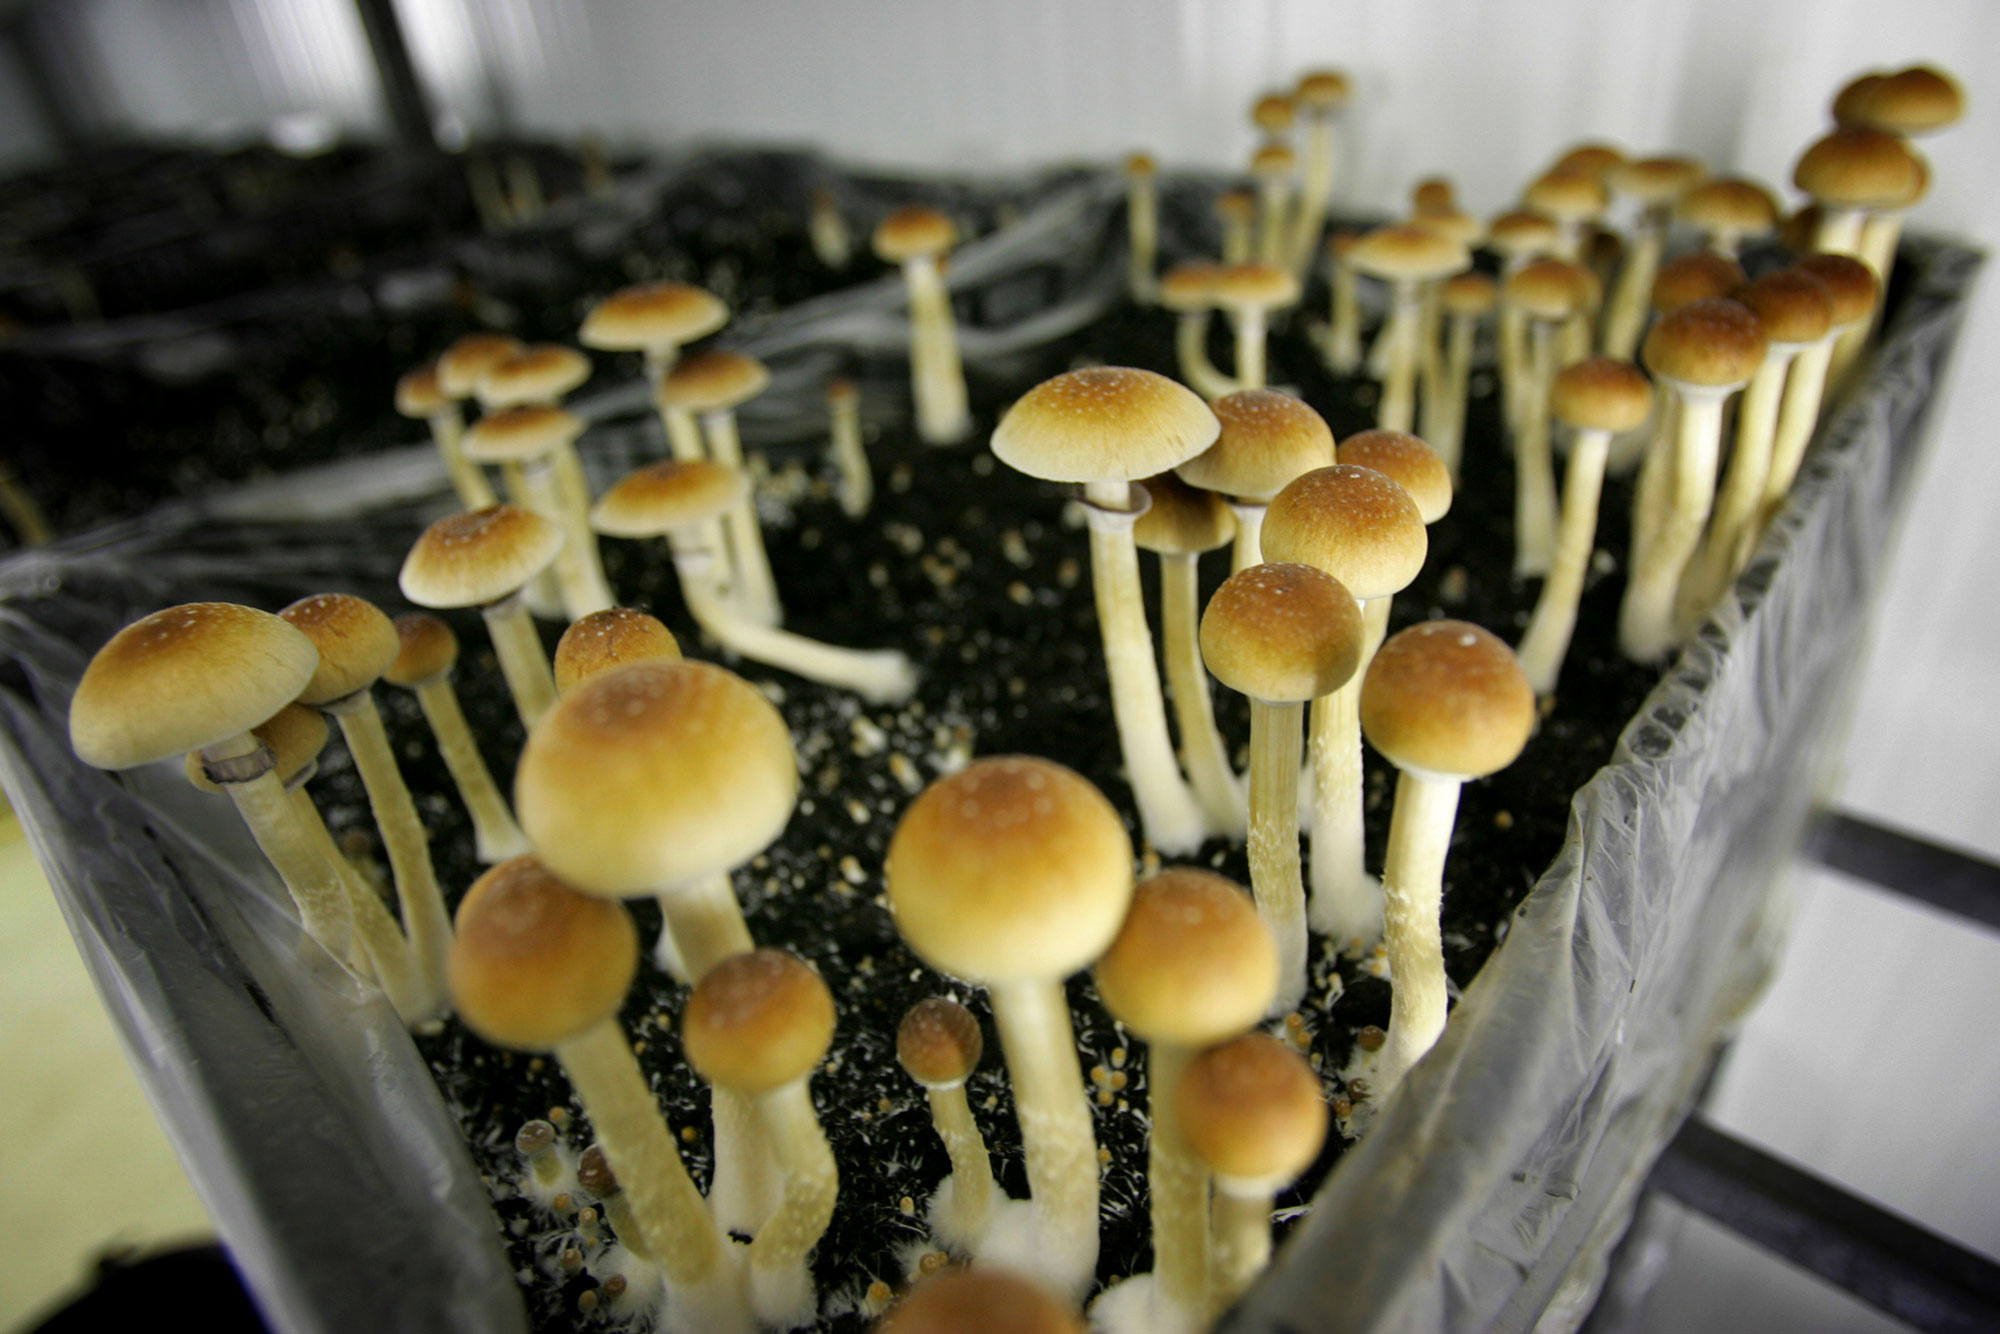 <p>Magic mushrooms are seen in a grow room at the Procare farm in Hazerswoude, central Netherlands on this Aug. 3, 2007 file photo.</p>